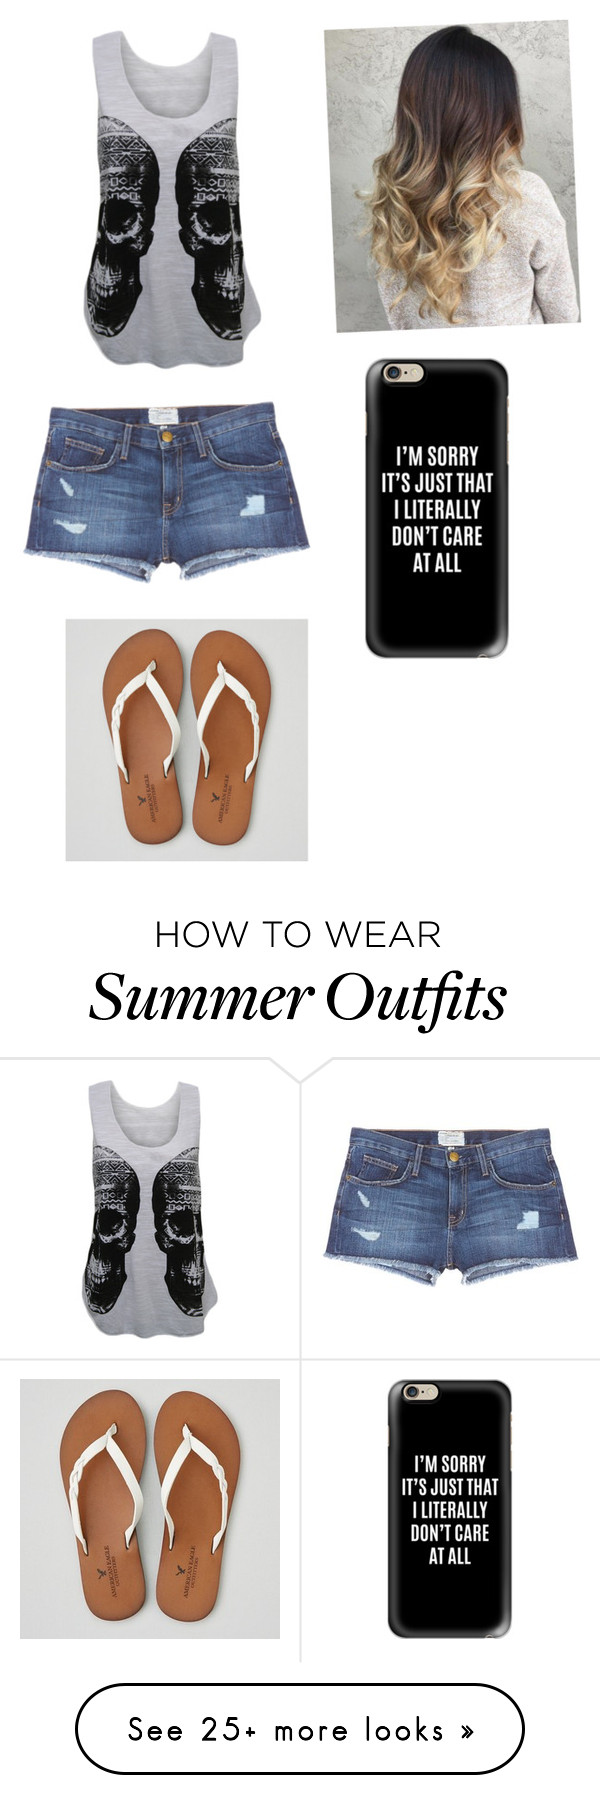 """""""Summer outfit#2"""" by alyssaneitz on Polyvore featuring WearAll, Current/Elliott, American Eagle Outfitters and Casetify"""